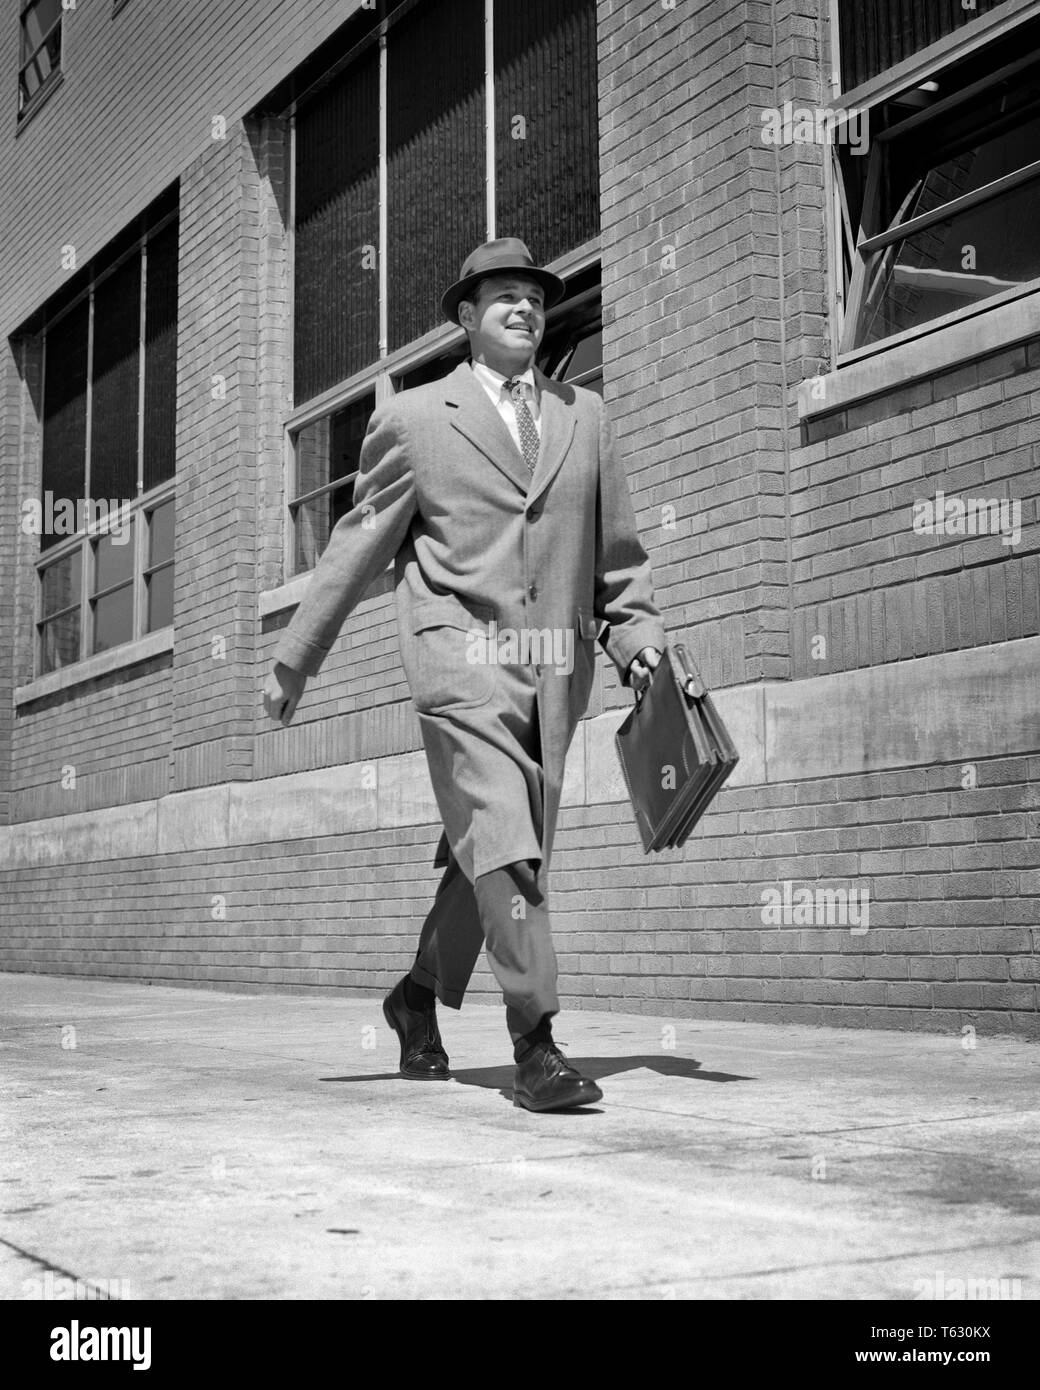 1950s 1960s BUSY SELF CONFIDENT SALESMAN WALKING BRISKLY DOWN CITY STREET WEARING TOP COAT HAT HOLDING BRIEFCASE SMILING - s7416 HAR001 HARS JOY LIFESTYLE SPEED SATISFACTION CELEBRATION HEALTHINESS COPY SPACE FULL-LENGTH PHYSICAL FITNESS PERSONS INSPIRATION CARING MALES CONFIDENCE EXPRESSIONS B&W SELF SUCCESS VISION SUIT AND TIE SELLING HAPPINESS CHEERFUL STRENGTH STRATEGY CUSTOMER SERVICE EXCITEMENT LEADERSHIP LOW ANGLE POWERFUL PROGRESS DIRECTION PRIDE OPPORTUNITY AUTHORITY OCCUPATIONS SMILES ANIMATED CONCEPTUAL JOYFUL STYLISH CONFIDENT MID-ADULT MID-ADULT MAN SALESMEN TOP COAT - Stock Image